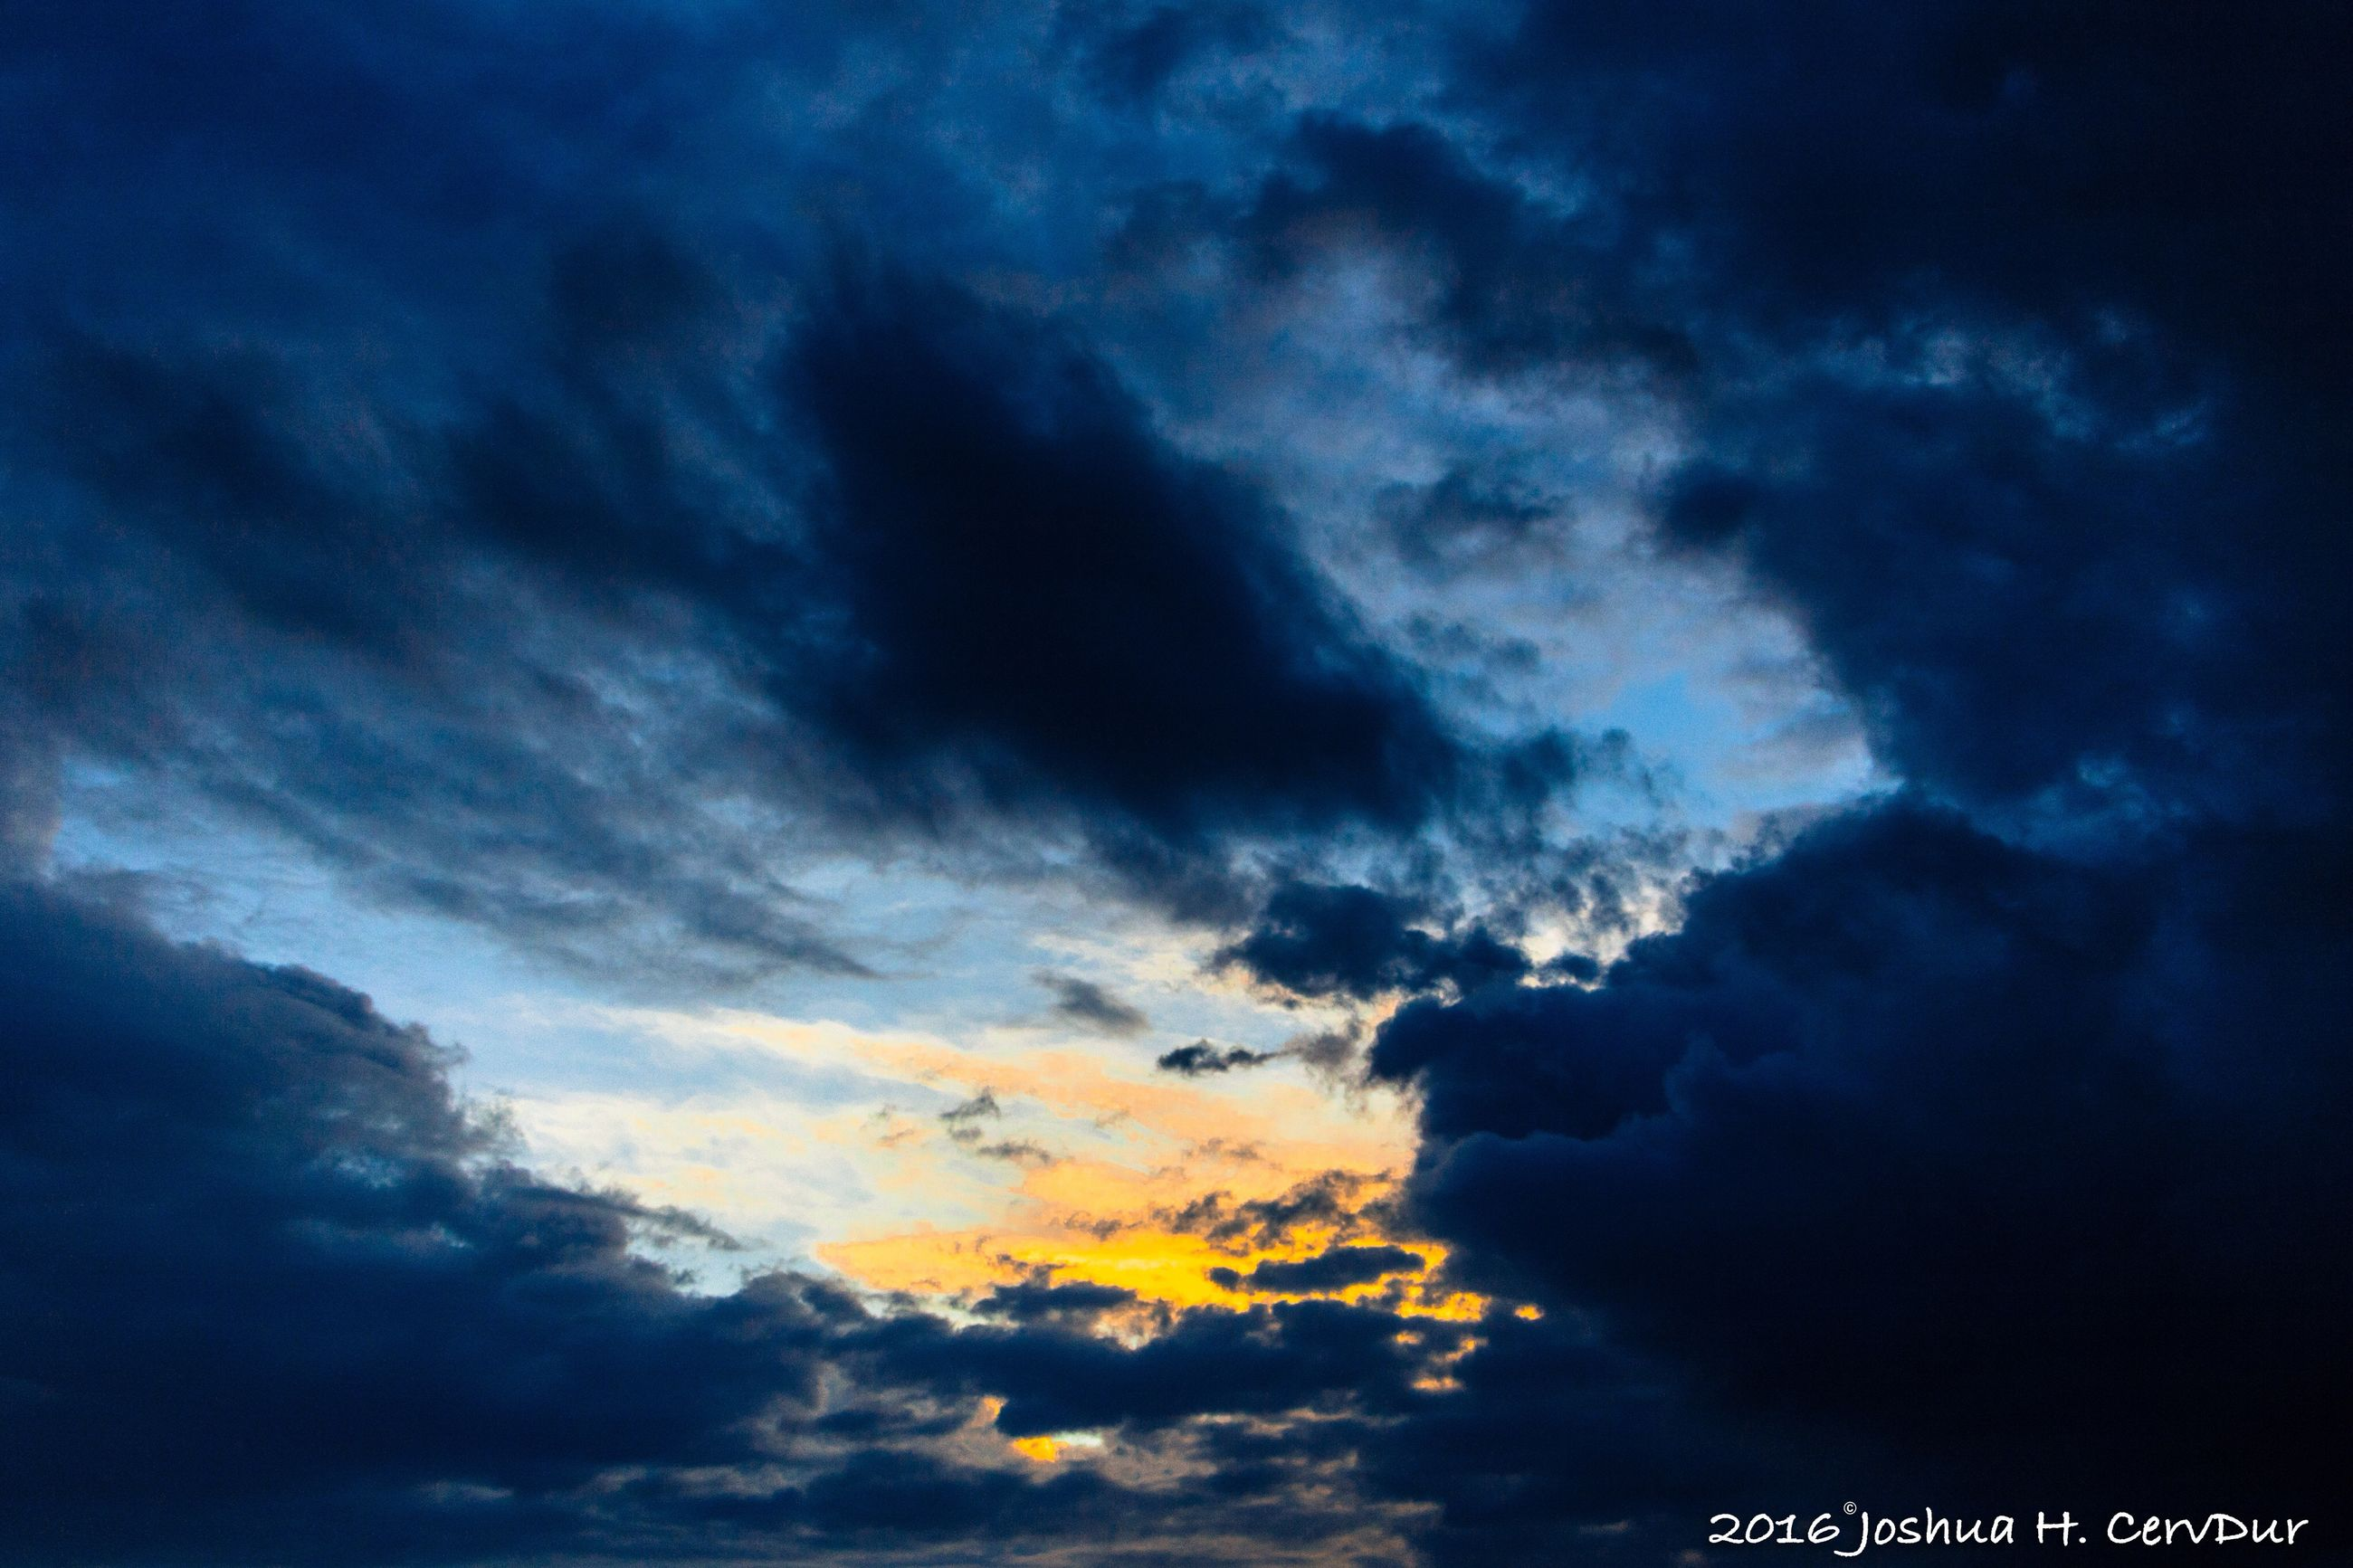 sky, cloud - sky, low angle view, cloudy, beauty in nature, scenics, nature, tranquility, cloudscape, tranquil scene, dramatic sky, weather, cloud, sky only, overcast, idyllic, blue, outdoors, backgrounds, no people, majestic, full frame